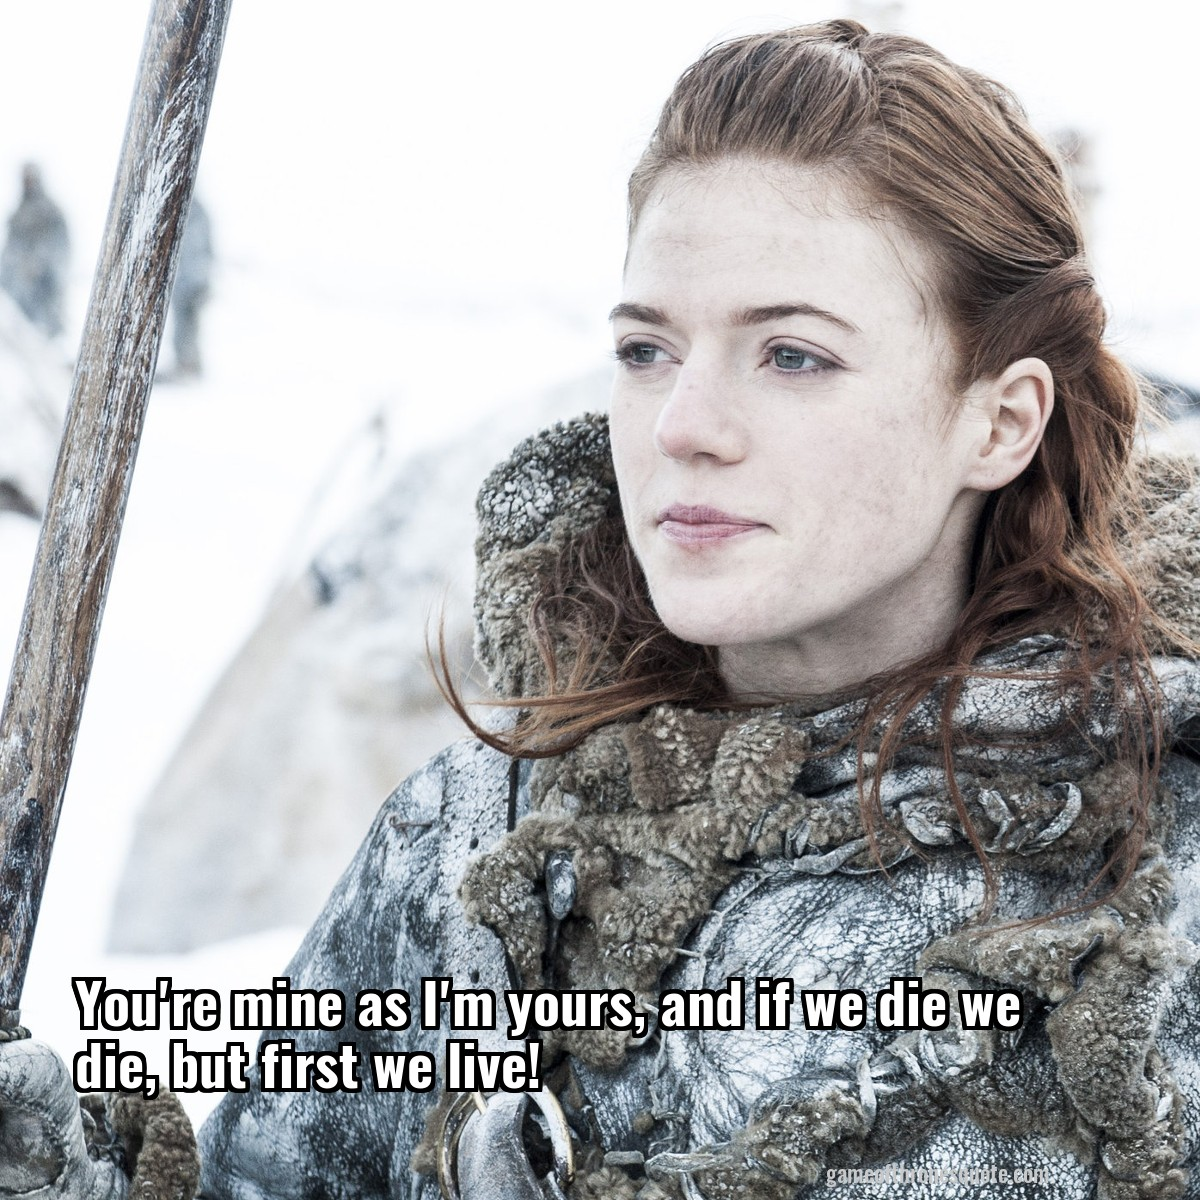 Ygritte: You're mine as I'm yours, and if we die we die, but first